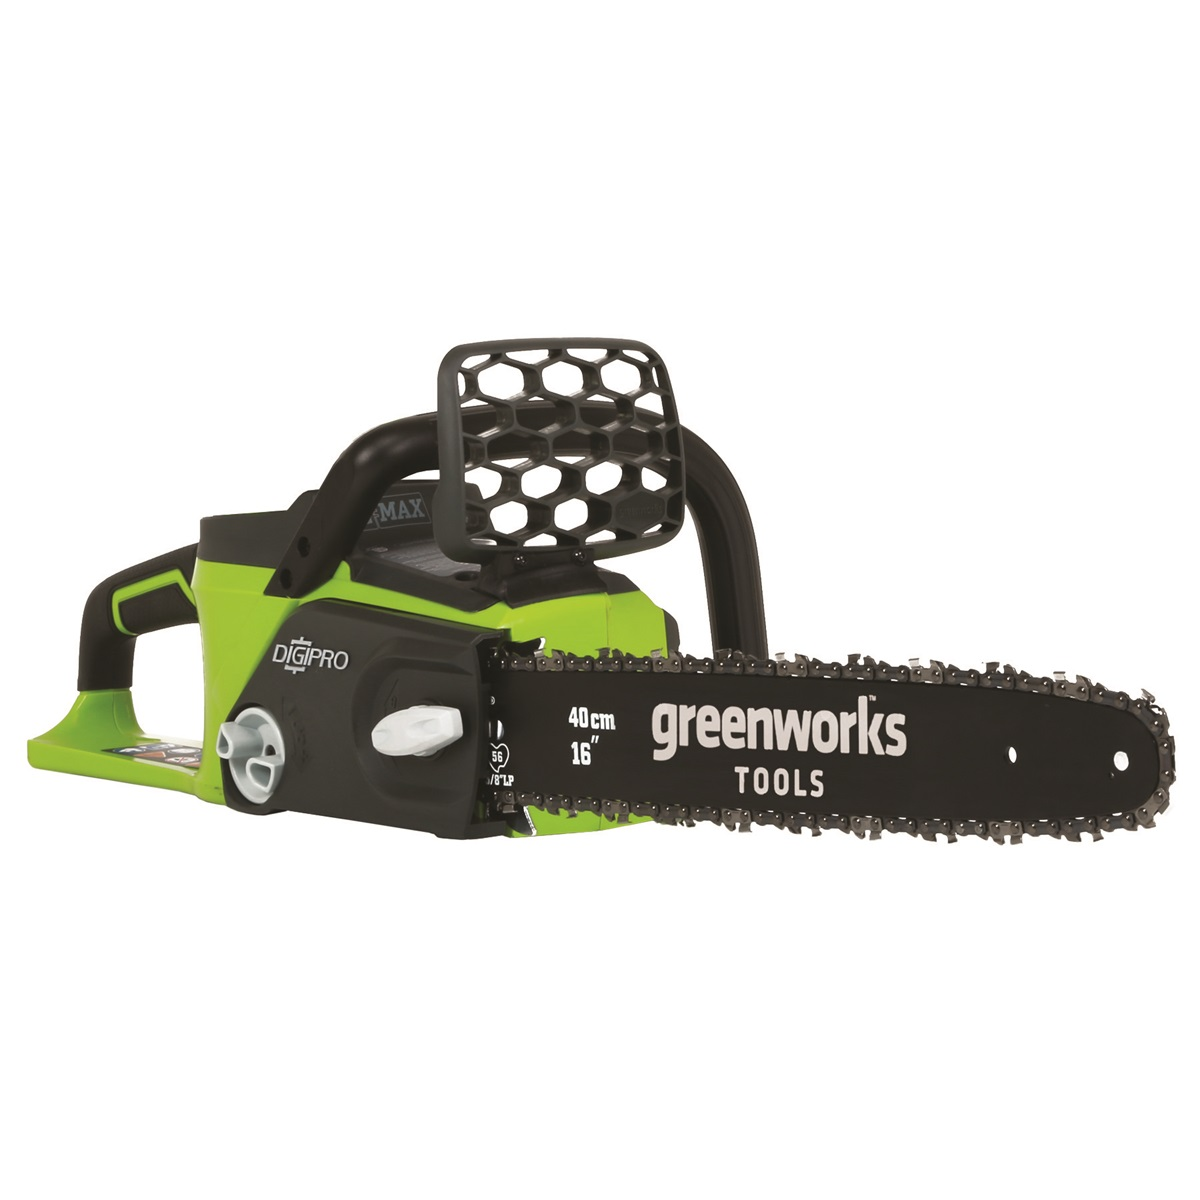 Greenworks GD40CS40